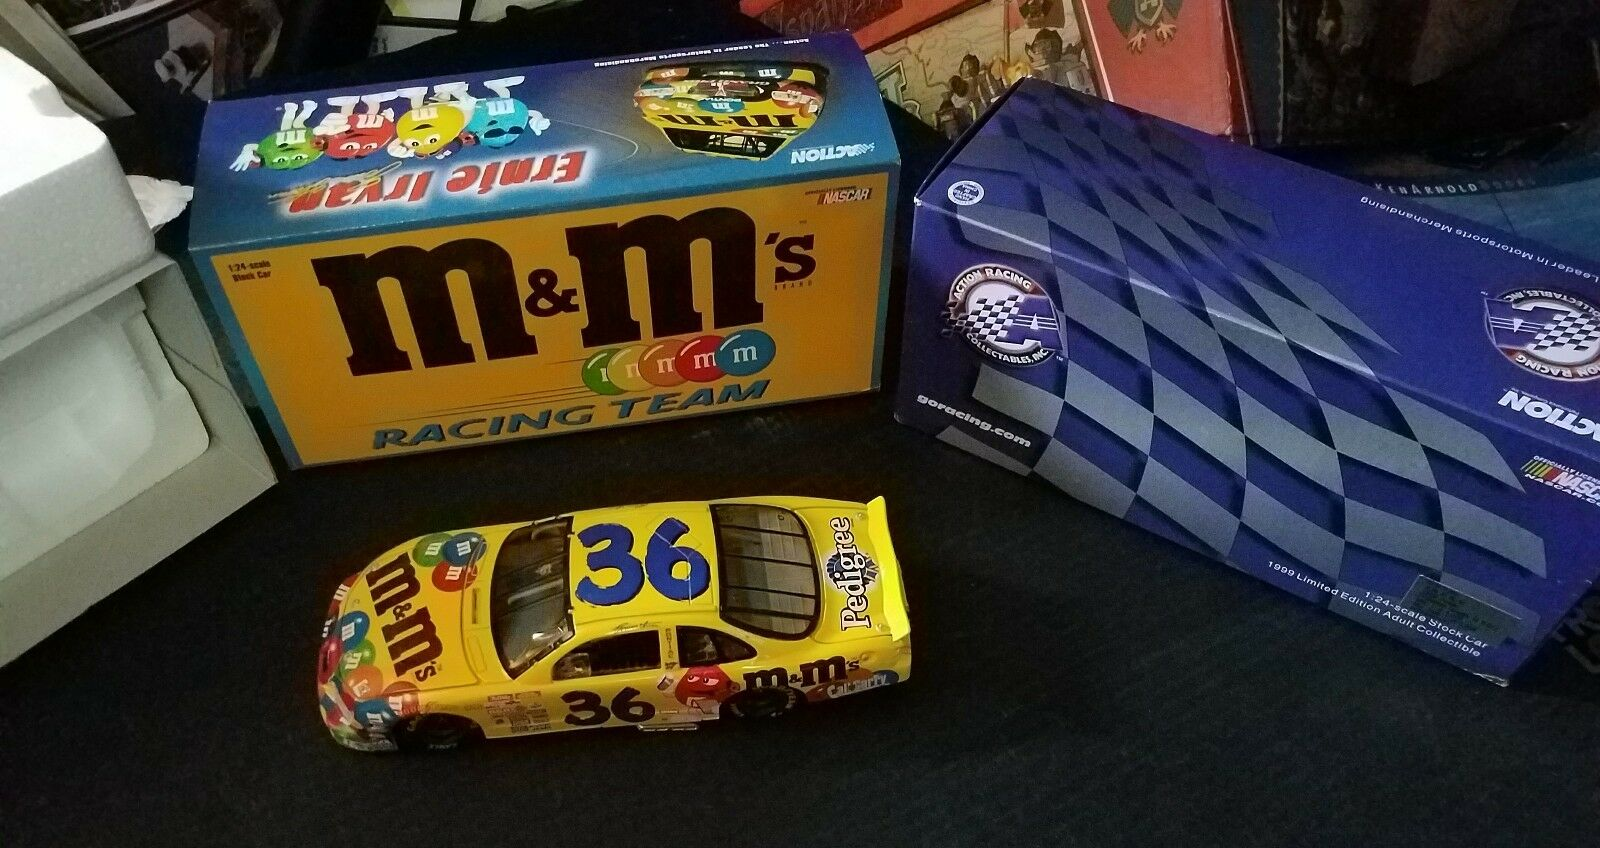 Édition Limitée ERNIE IRVAN  36 m&m 's Racing Team 1 24 Scale Die Cast Racing hard to find